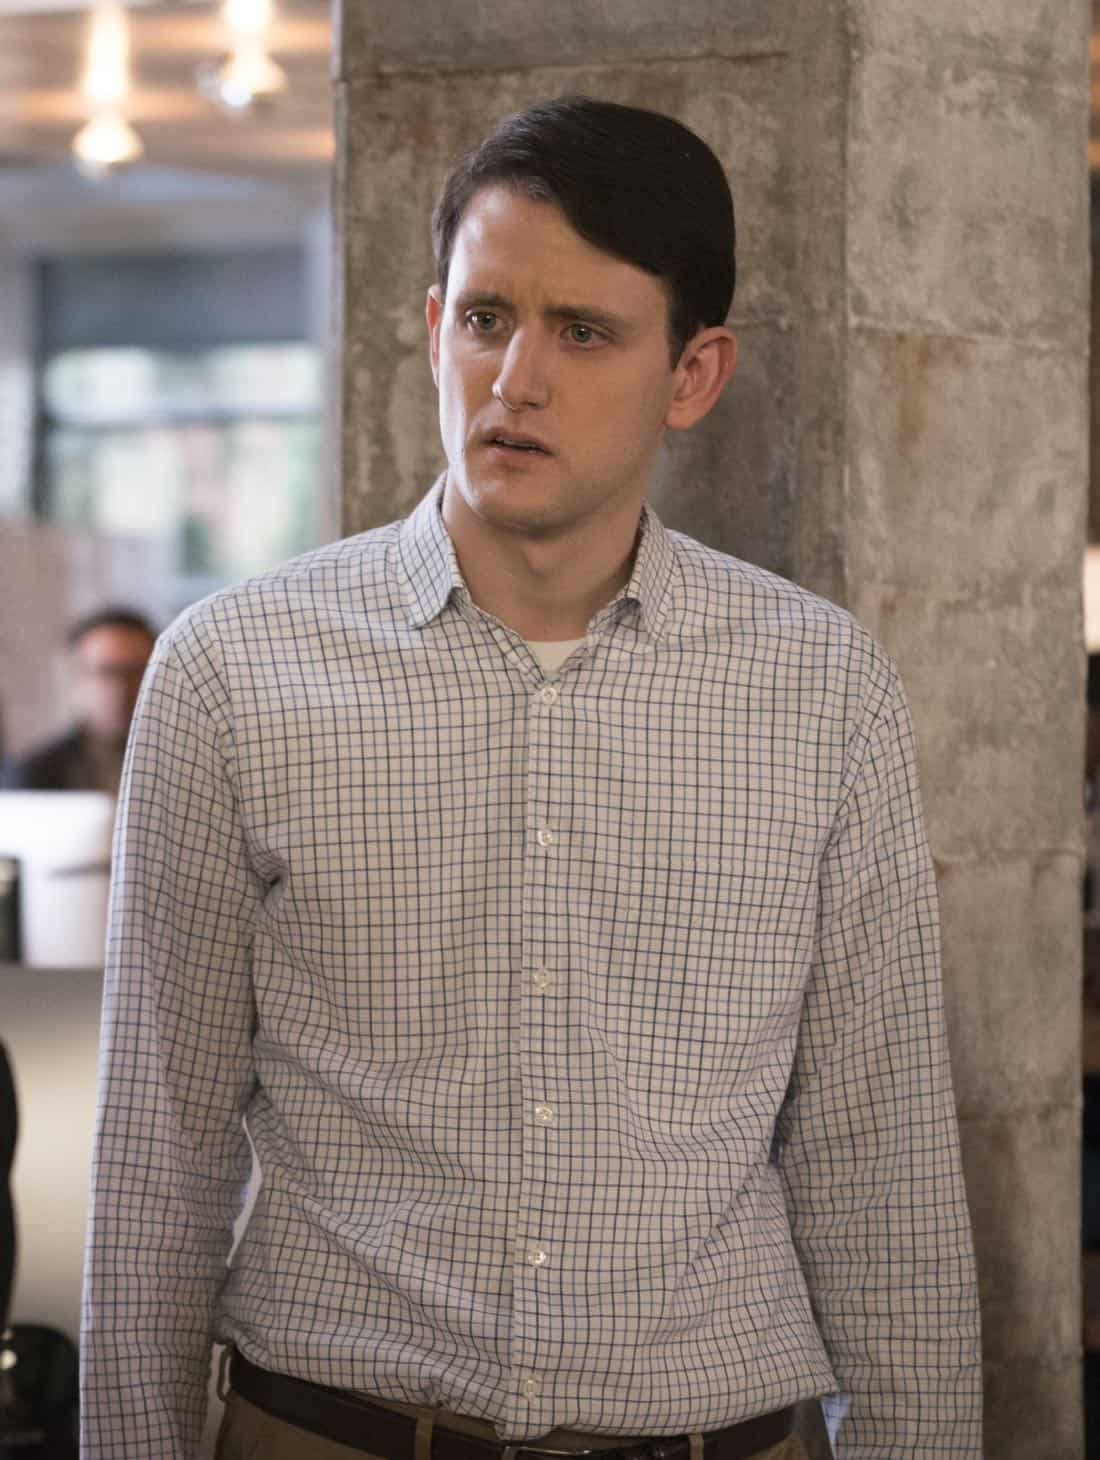 Episode 40 (season 5, episode 2), debut 4/1/18: Zach Woods. photo: Ali Paige Goldstein/HBO